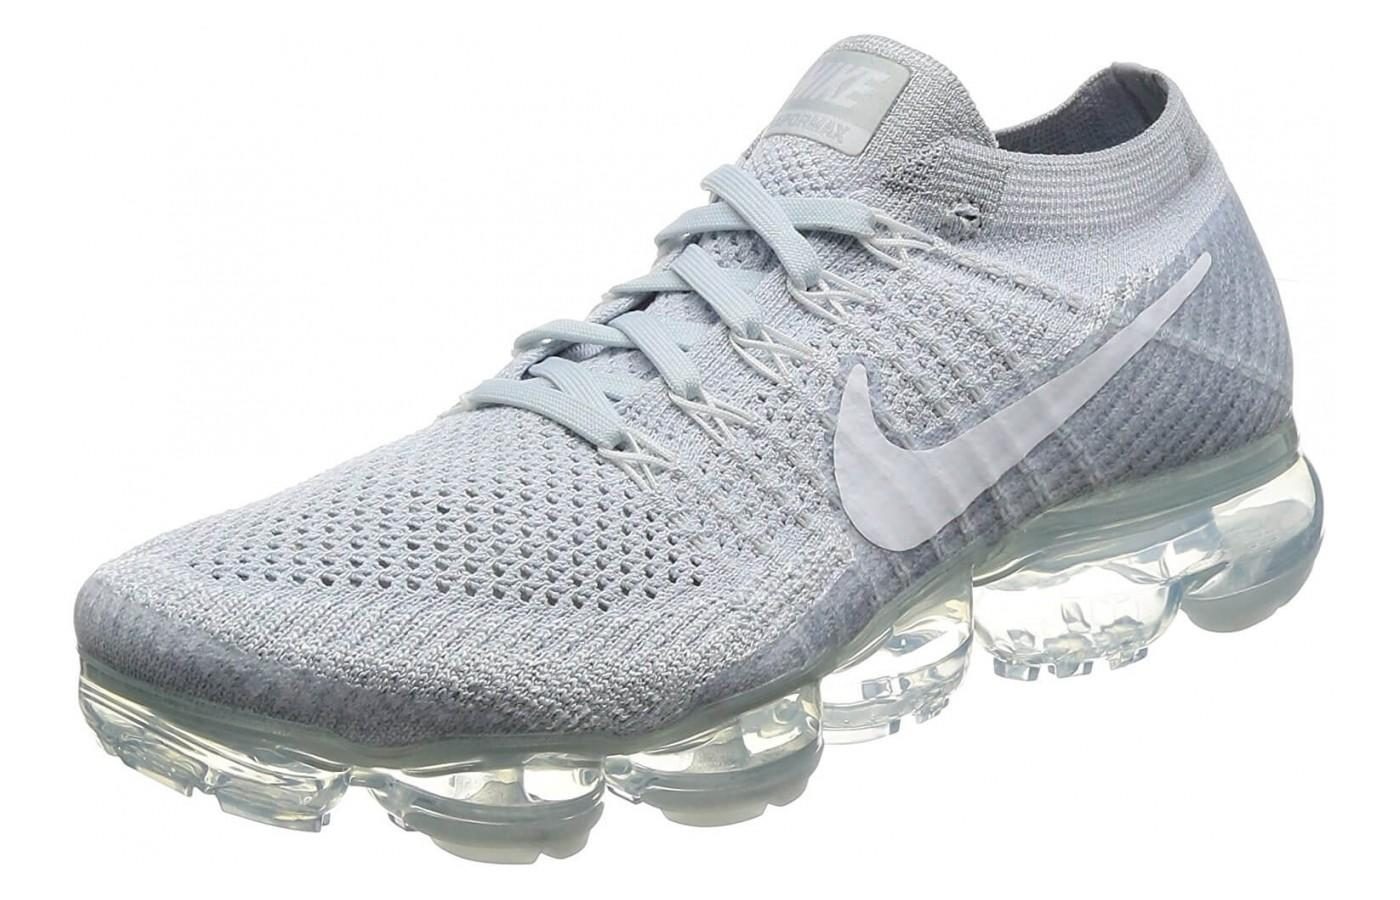 be04819d6180 Nike Air Vapormax Flyknit. The platinum coloring and unique design help  this shoe stand out.